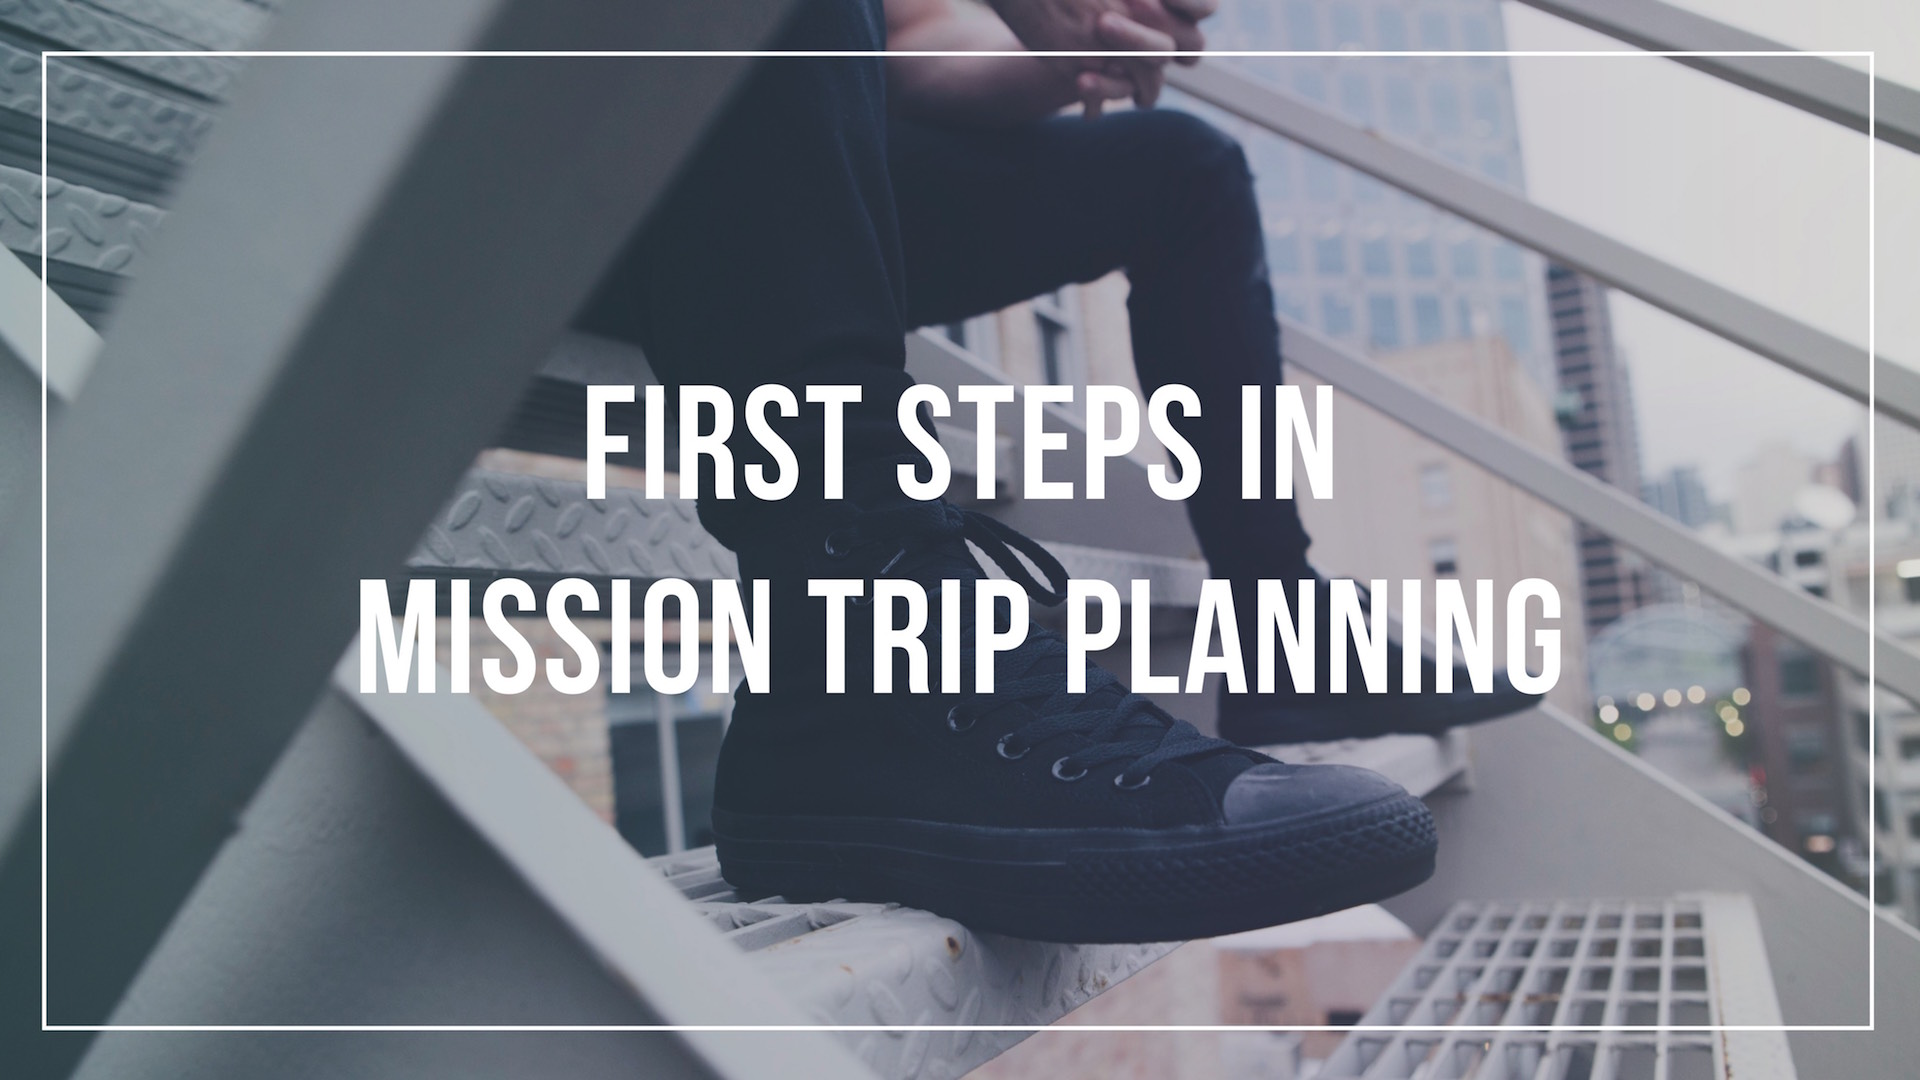 First steps in mission trip planning